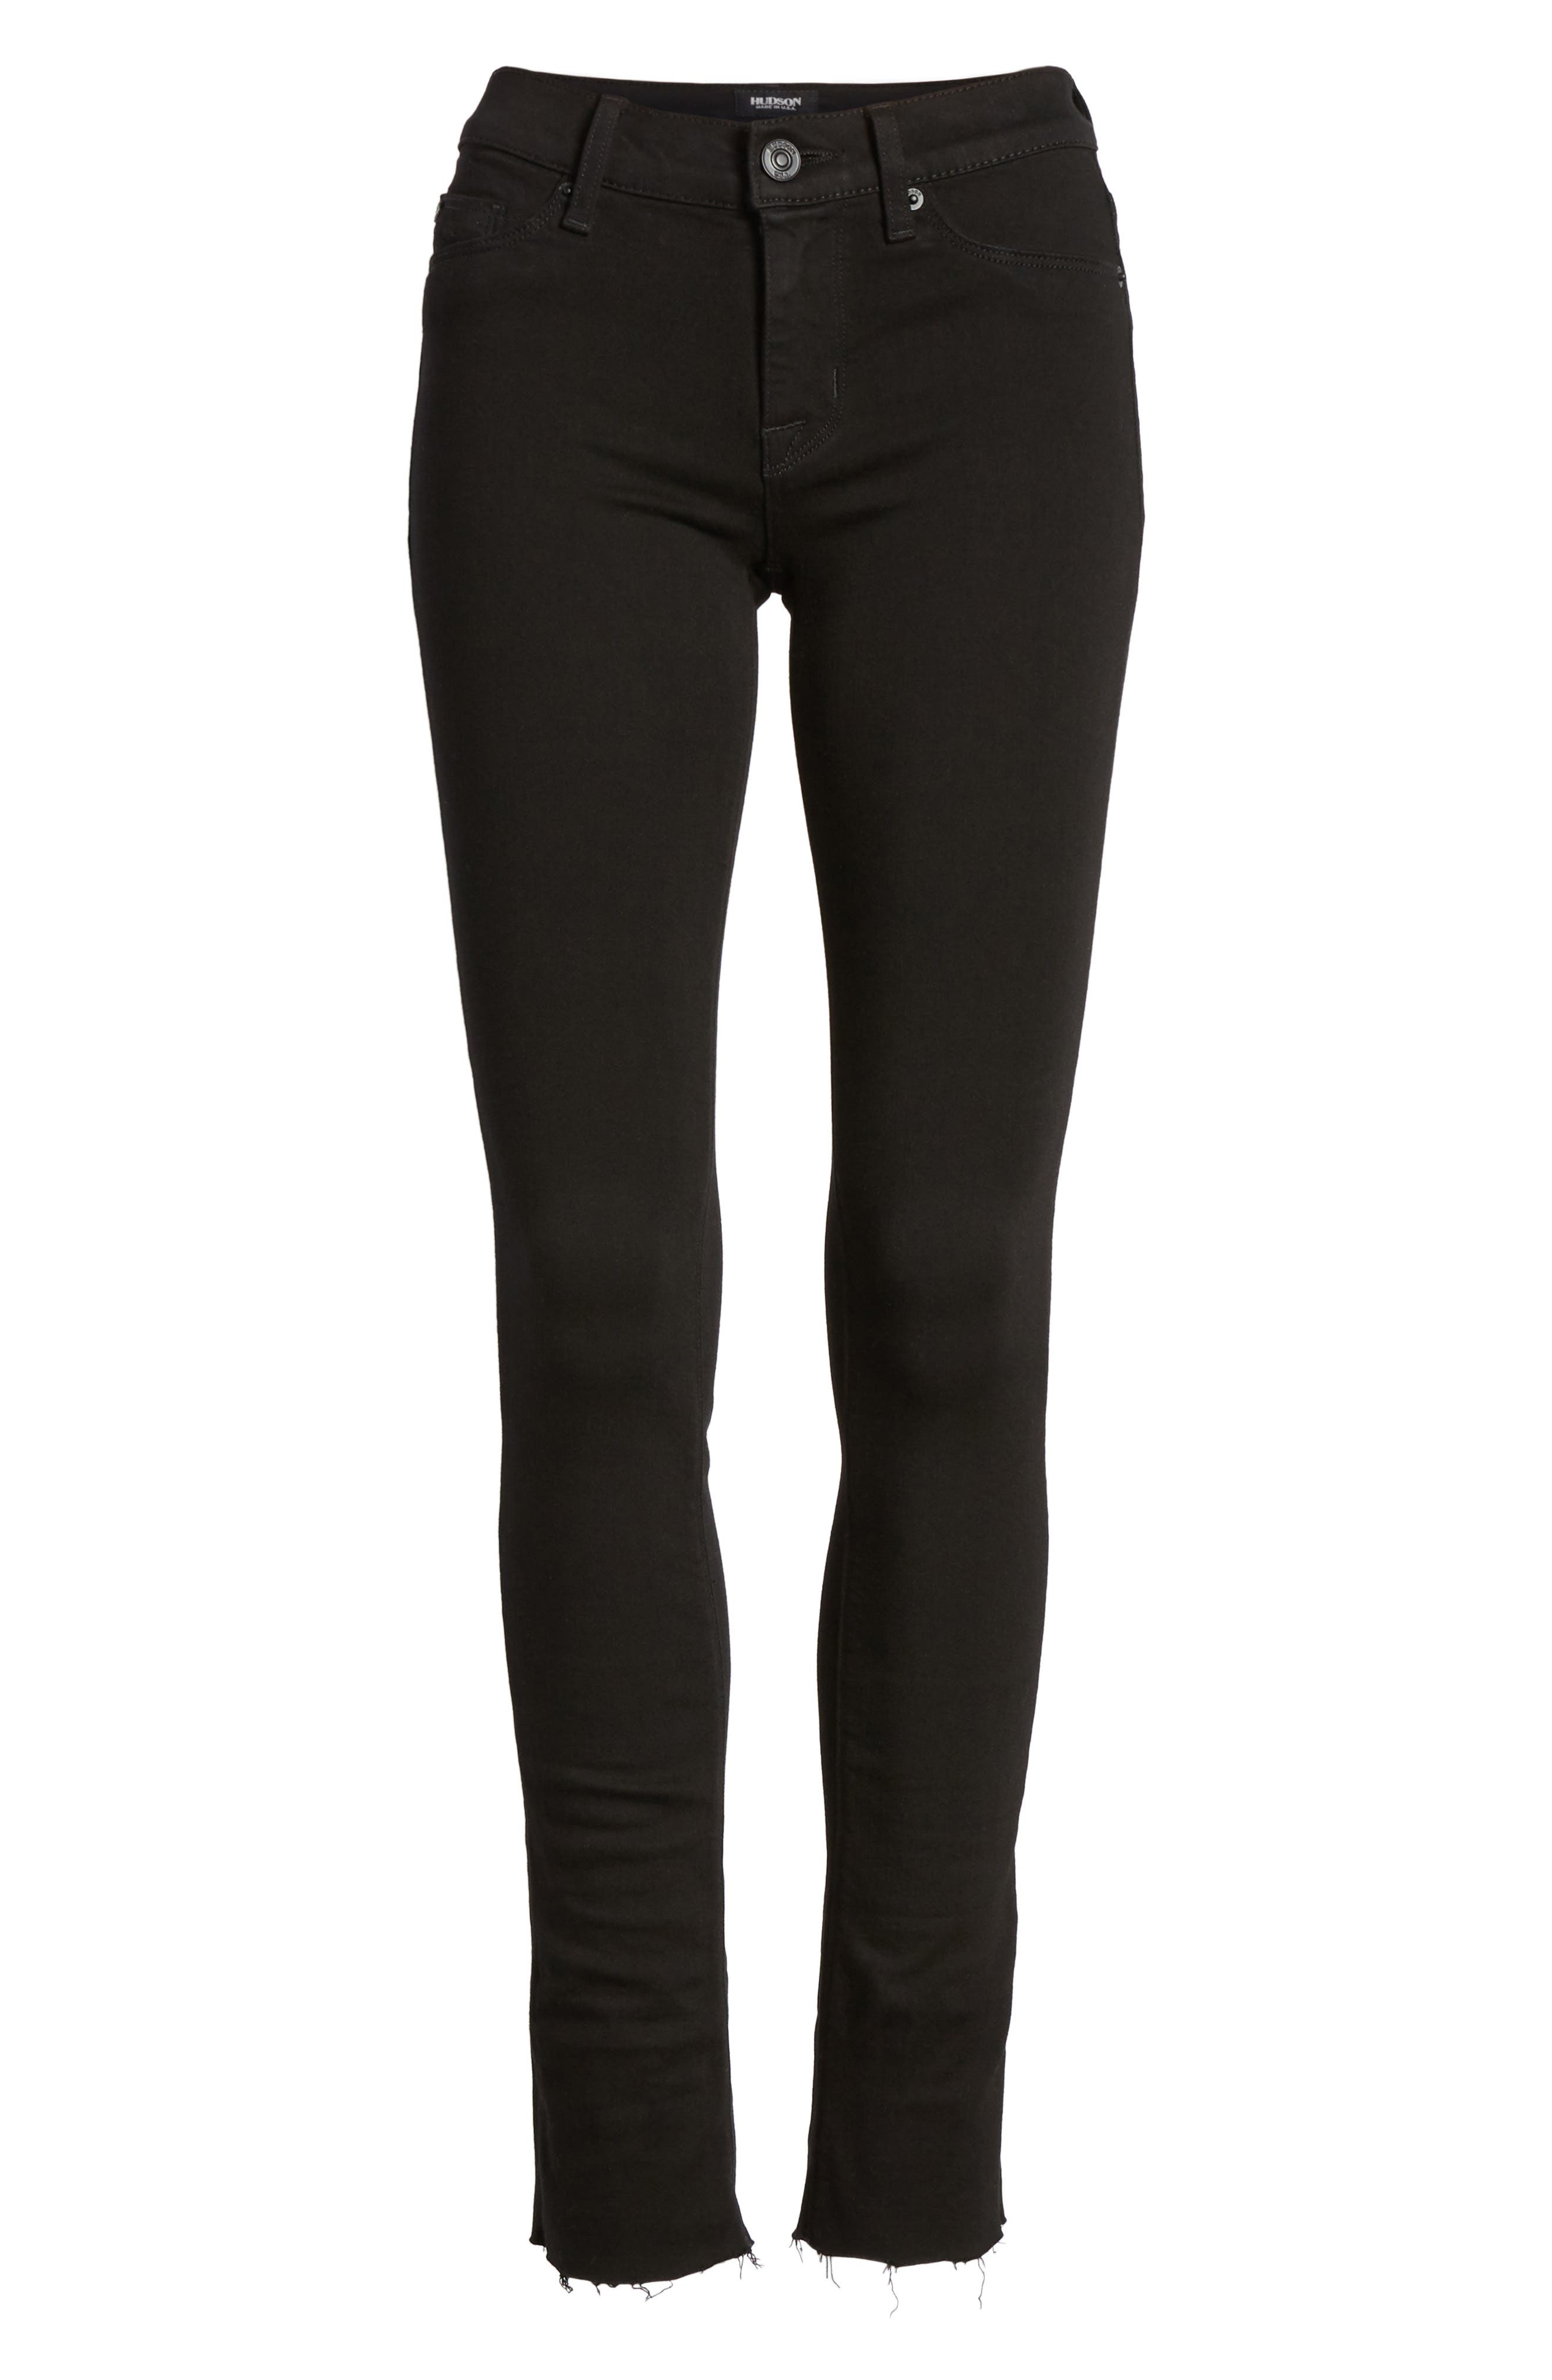 Tally Crop Skinny Jeans,                             Alternate thumbnail 7, color,                             001